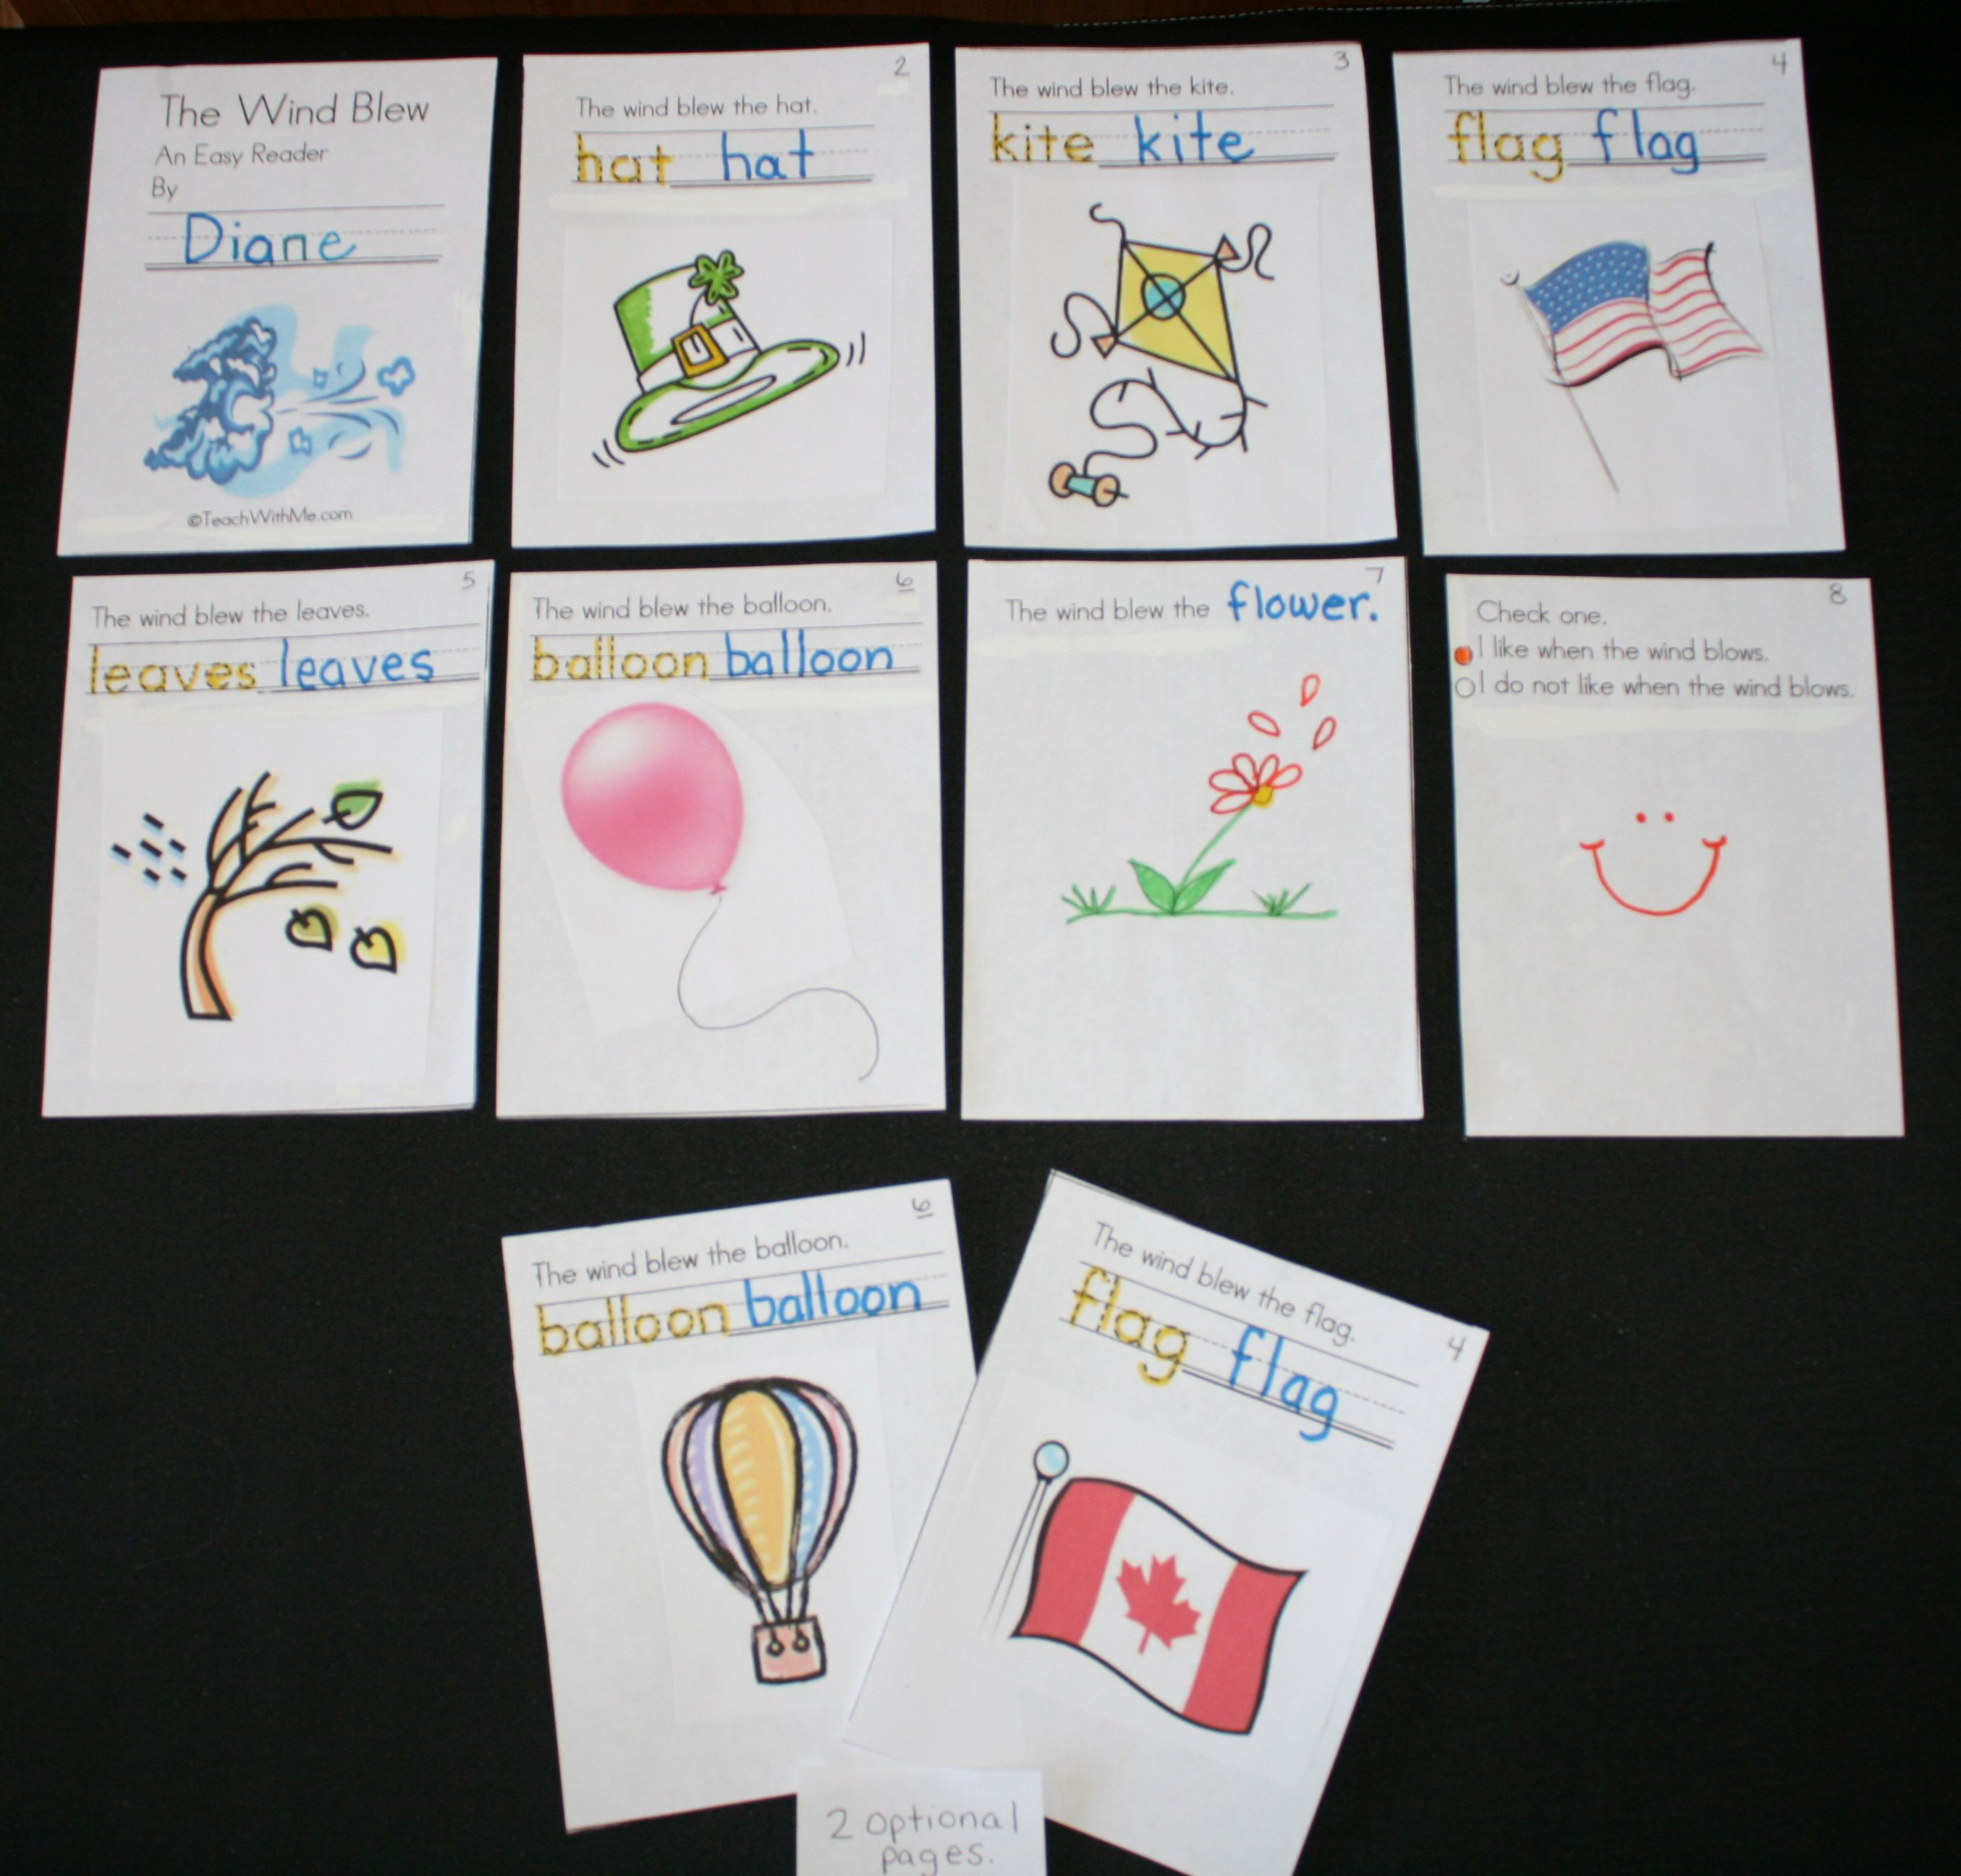 The Wind Blew Is An Easy Reader Where Students Trace